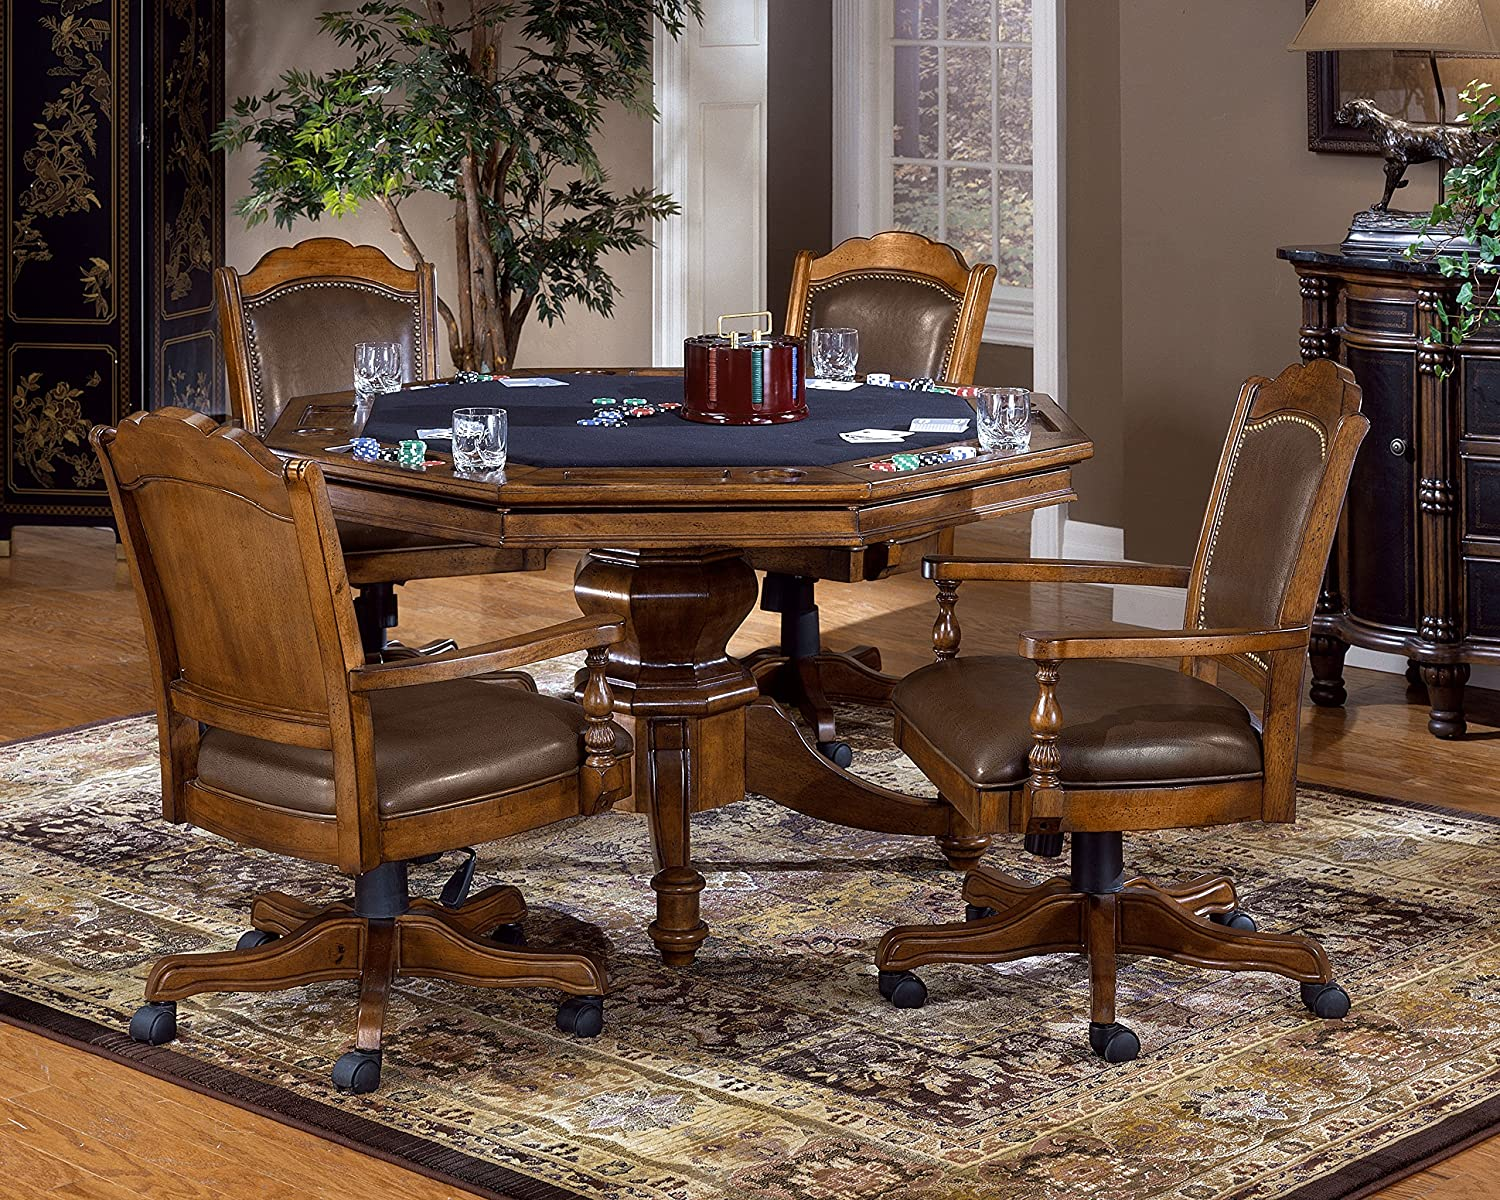 Hillsdale Dining Table Amazoncom Hillsdale Furniture 6060gtb Nassau Game Table In Brown